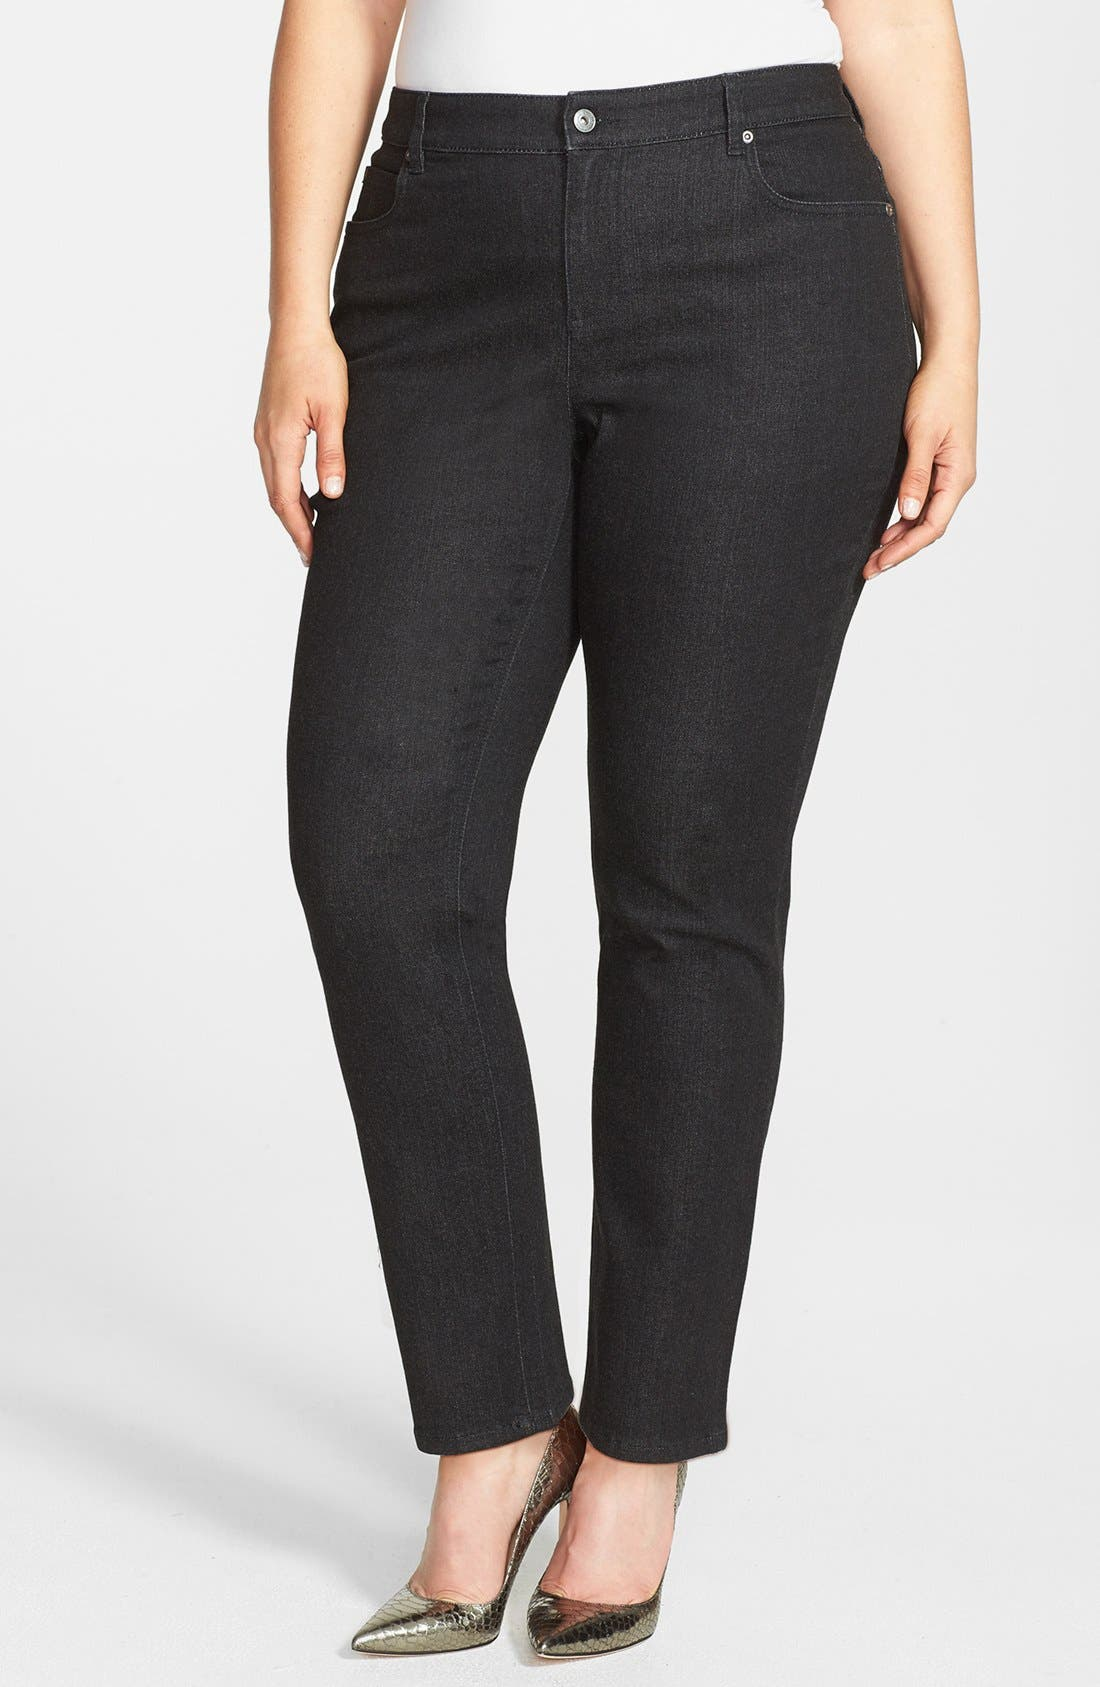 Alternate Image 1 Selected - Two by Vince Camuto Skinny Jeans (Black Denim) (Plus Size)